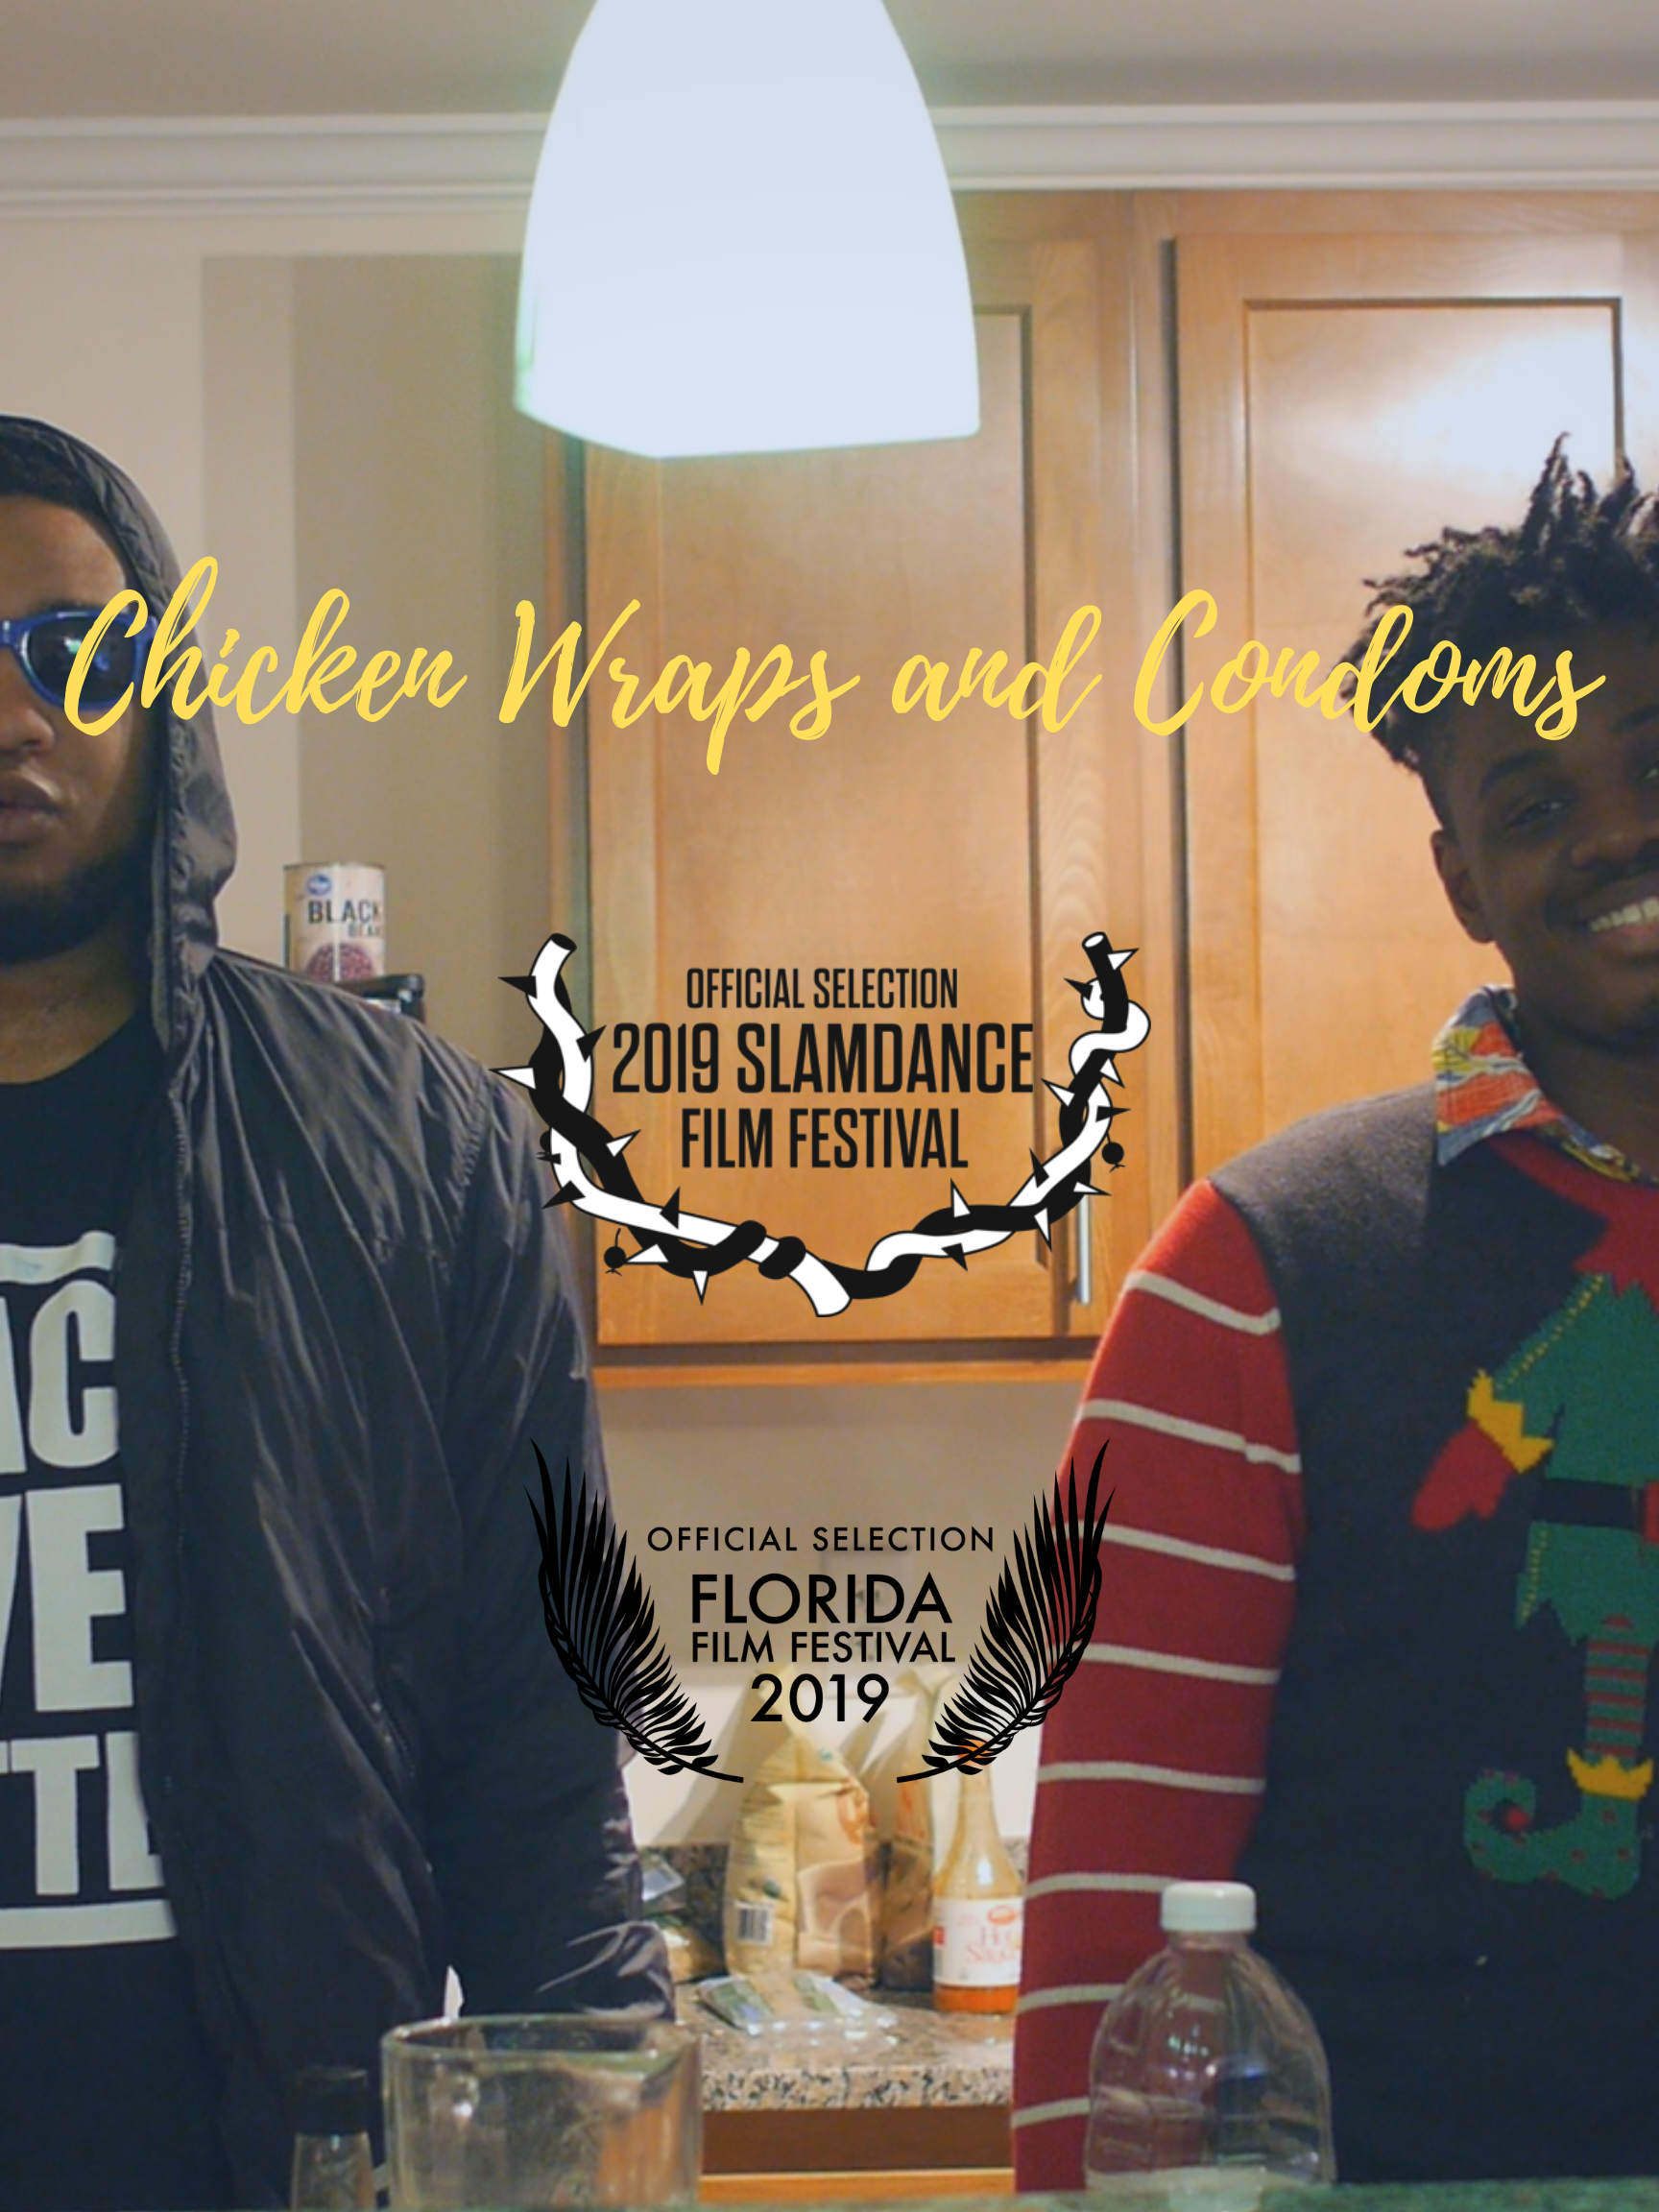 Chicken Wraps and Condoms poster